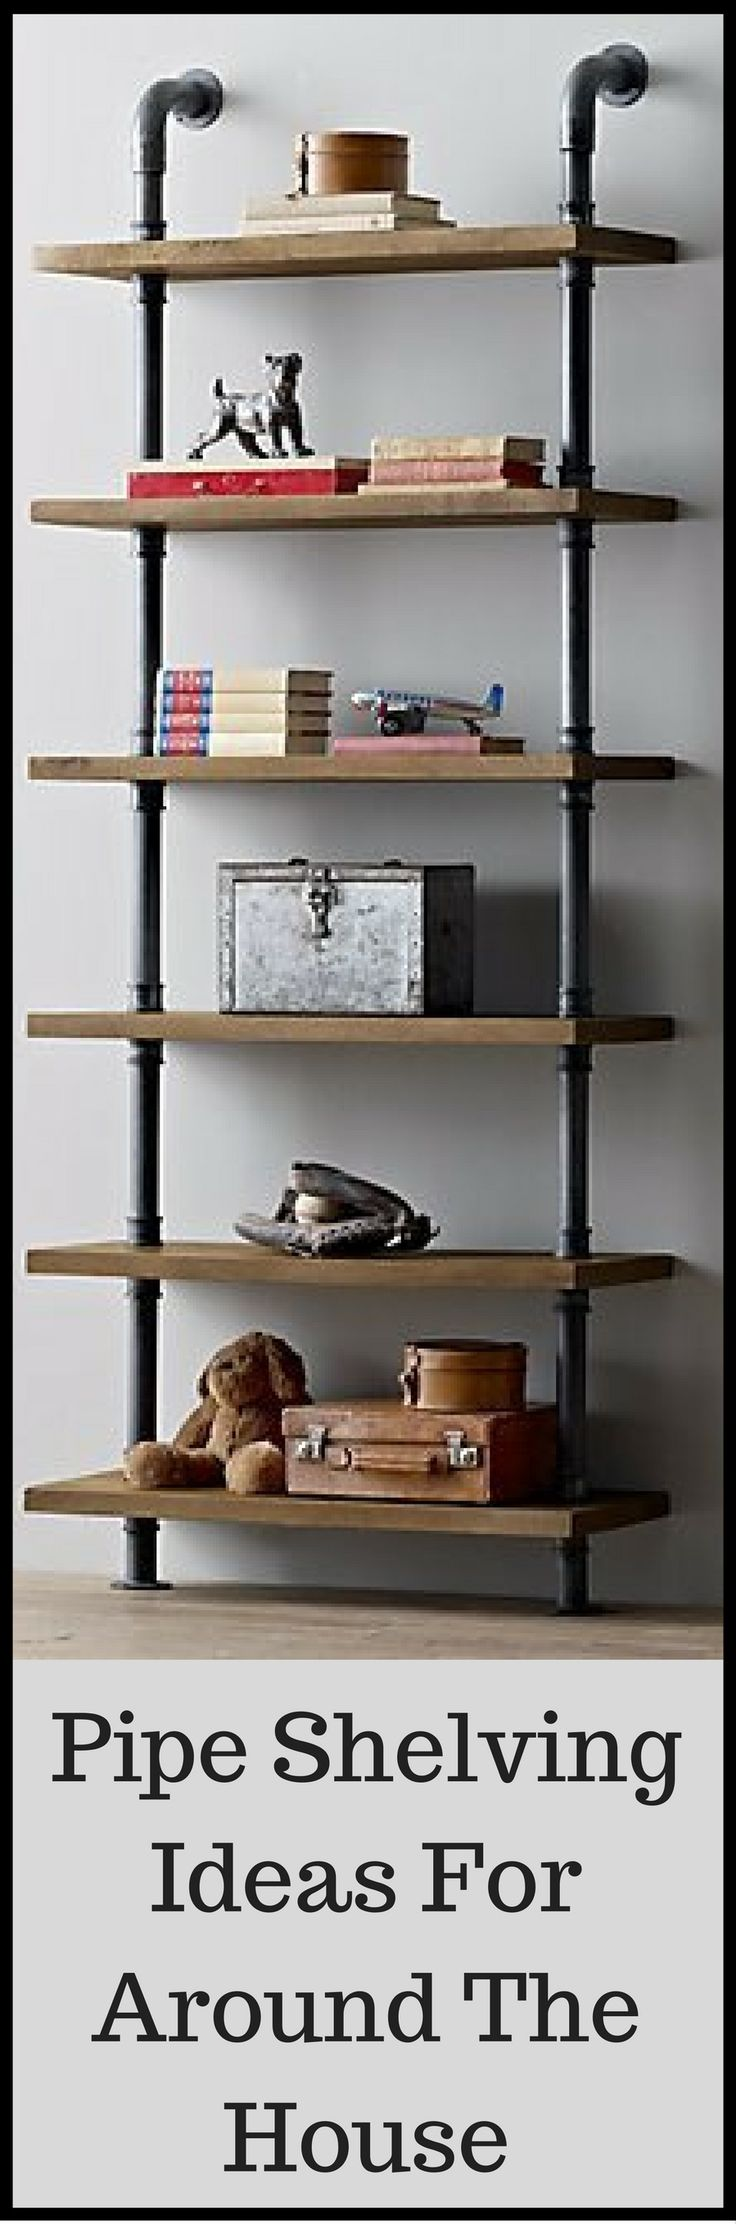 Pipe Shelving Ideas For Around Th House  http://vid.staged.com/kMht